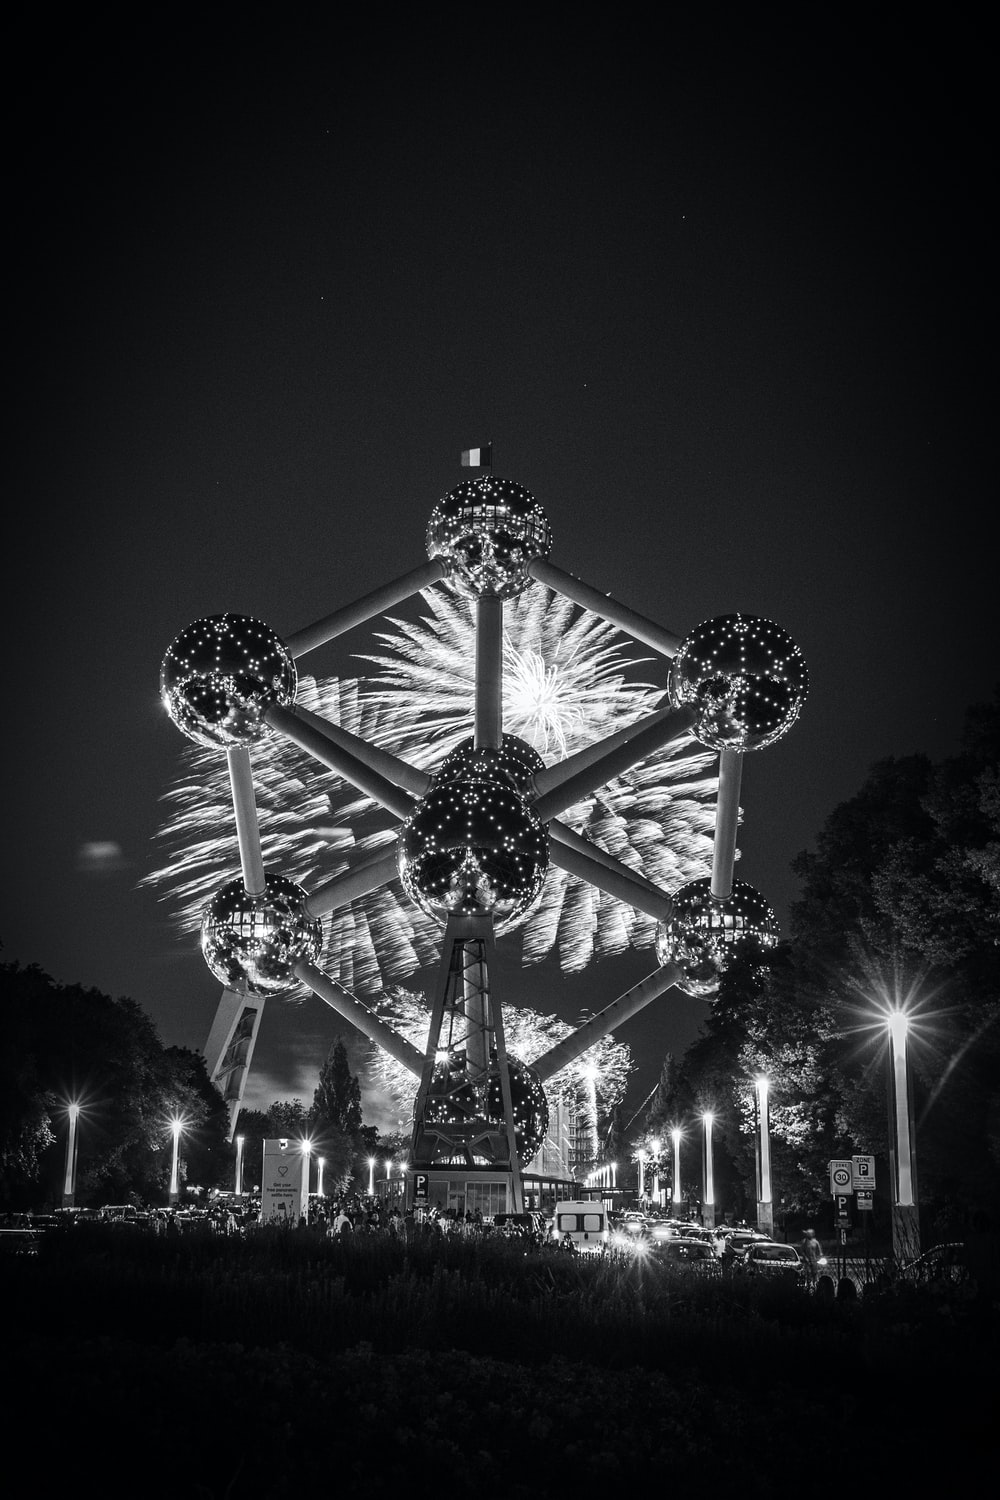 photography of sculpture during nighttime